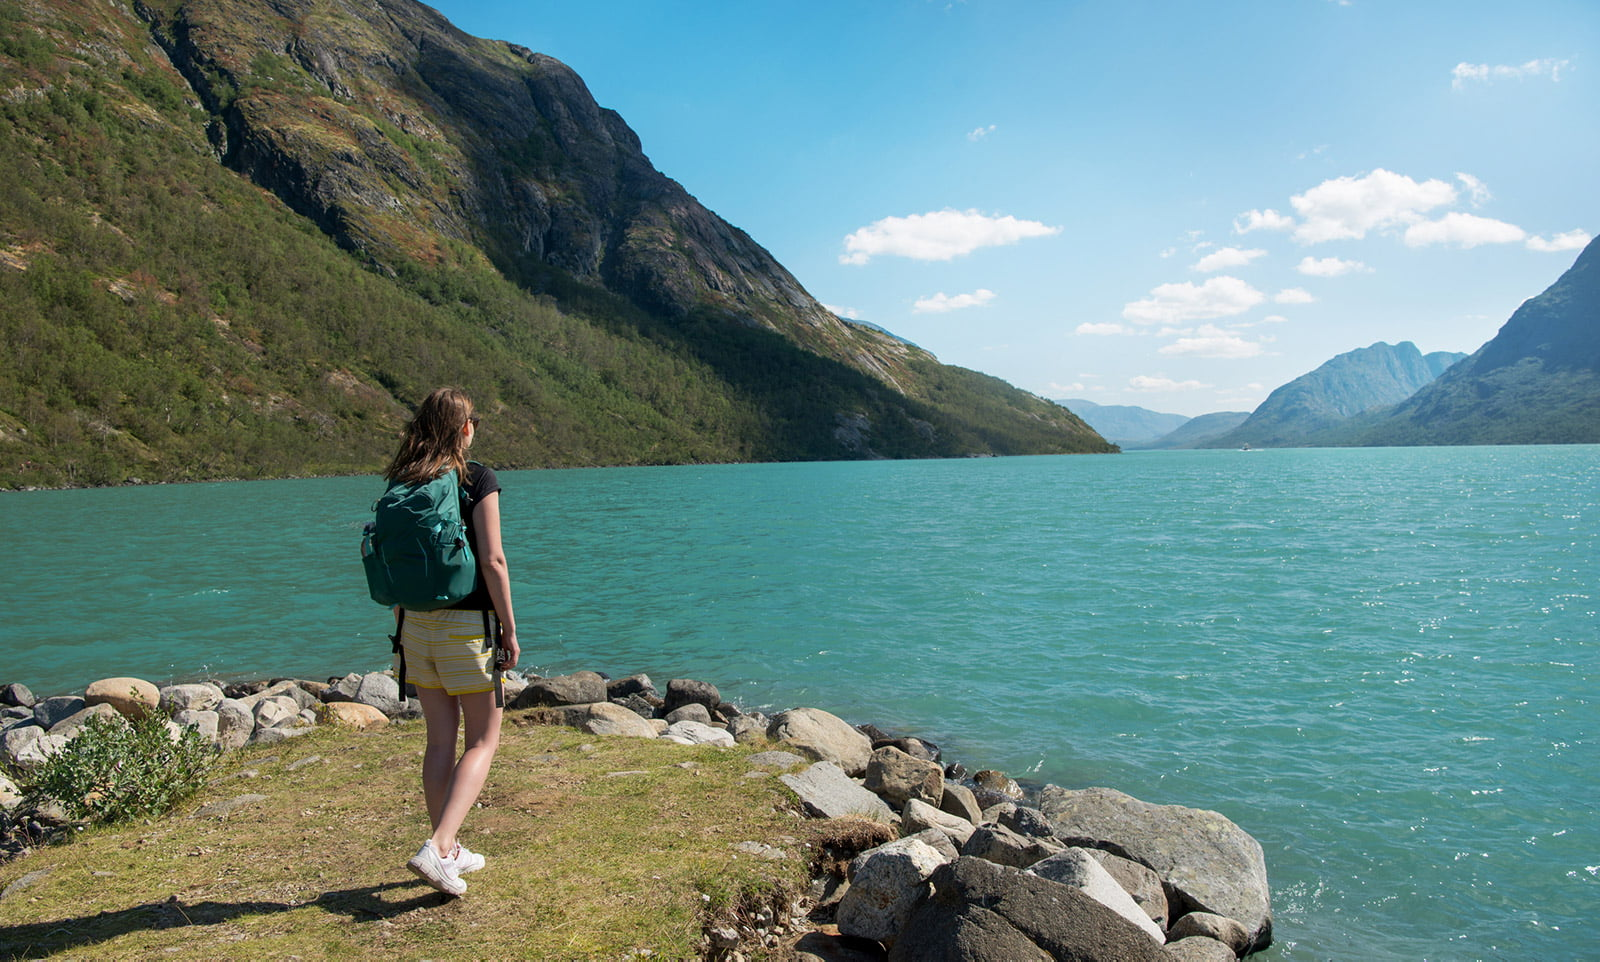 A Norwegian citizen hiking by a fjord